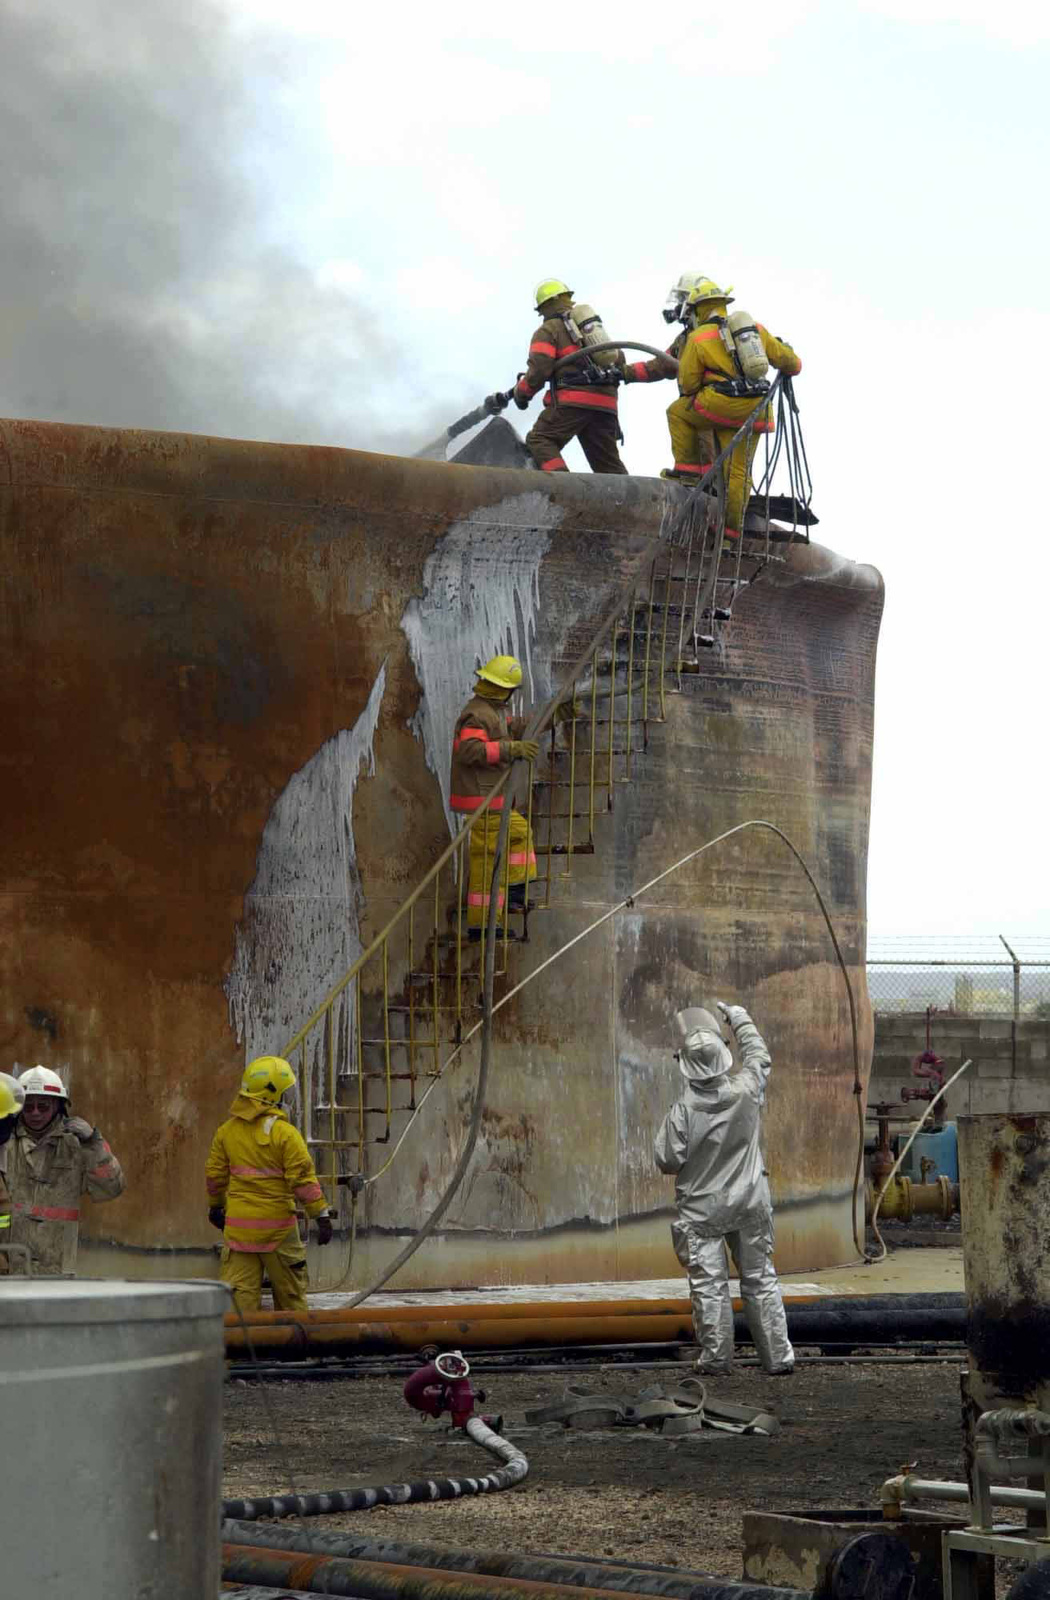 US Air Force (USAF) MASTER Sergeant (MSGT) Kenneth Reeves from the 36th Civil Engineer Squadron (CES), Fire Protection Flight stationed at Andersen Air Force Base (AFB), Guam works with members of the Guam Fire Department to extinguish a fuel tank fire on the Cabras Island tank farm